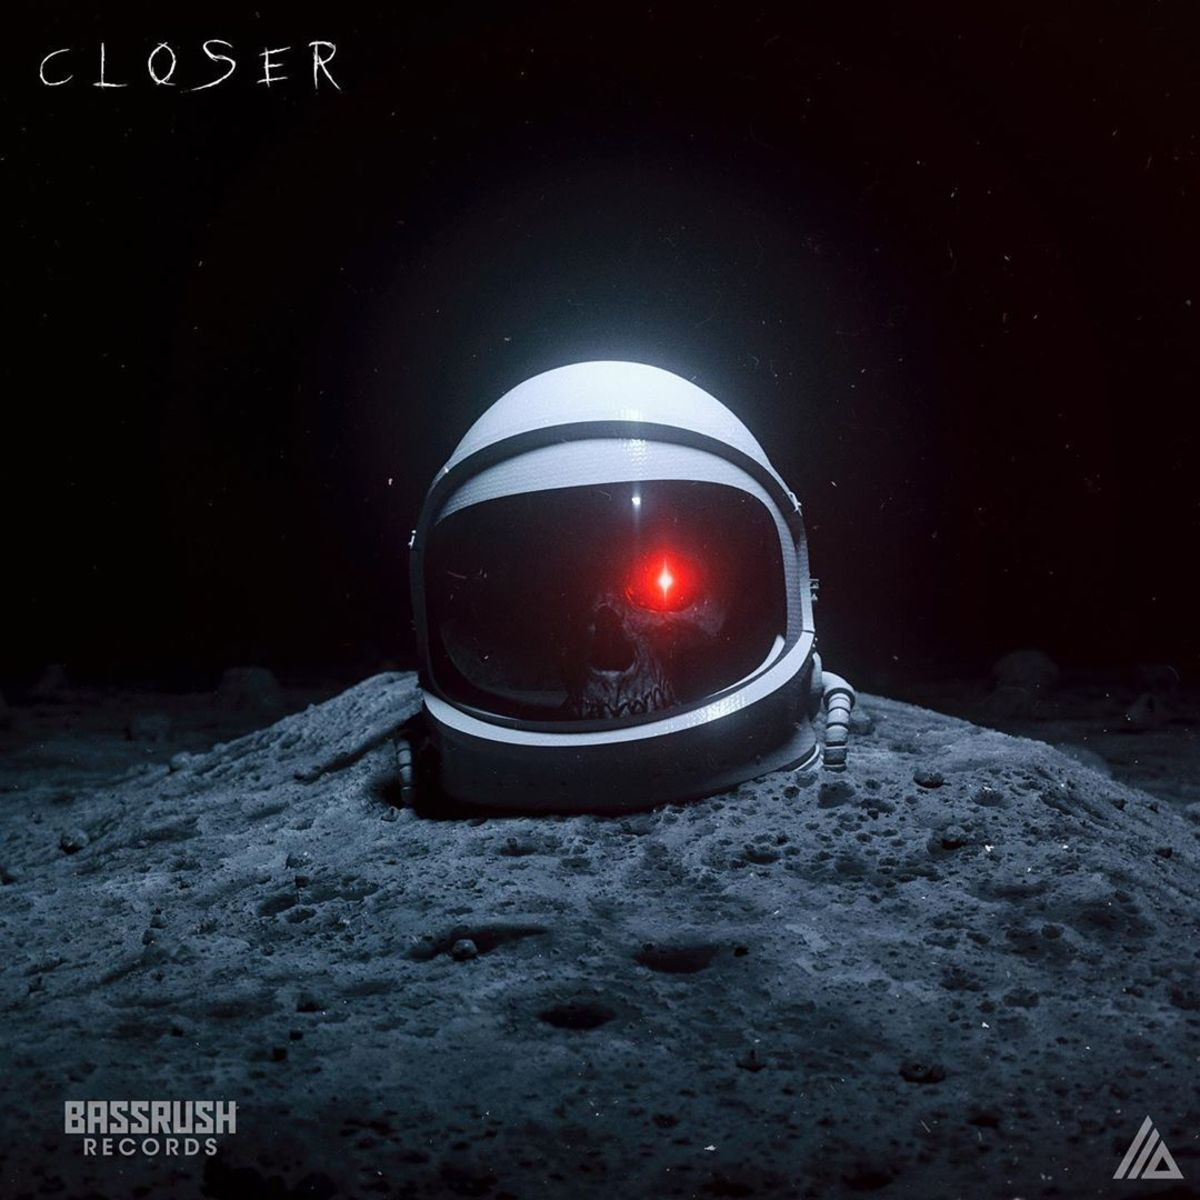 ATLiens & EDDIE - Closer (on Bassrush Records / Insomniac Records) -- ALBUM ARTWORK